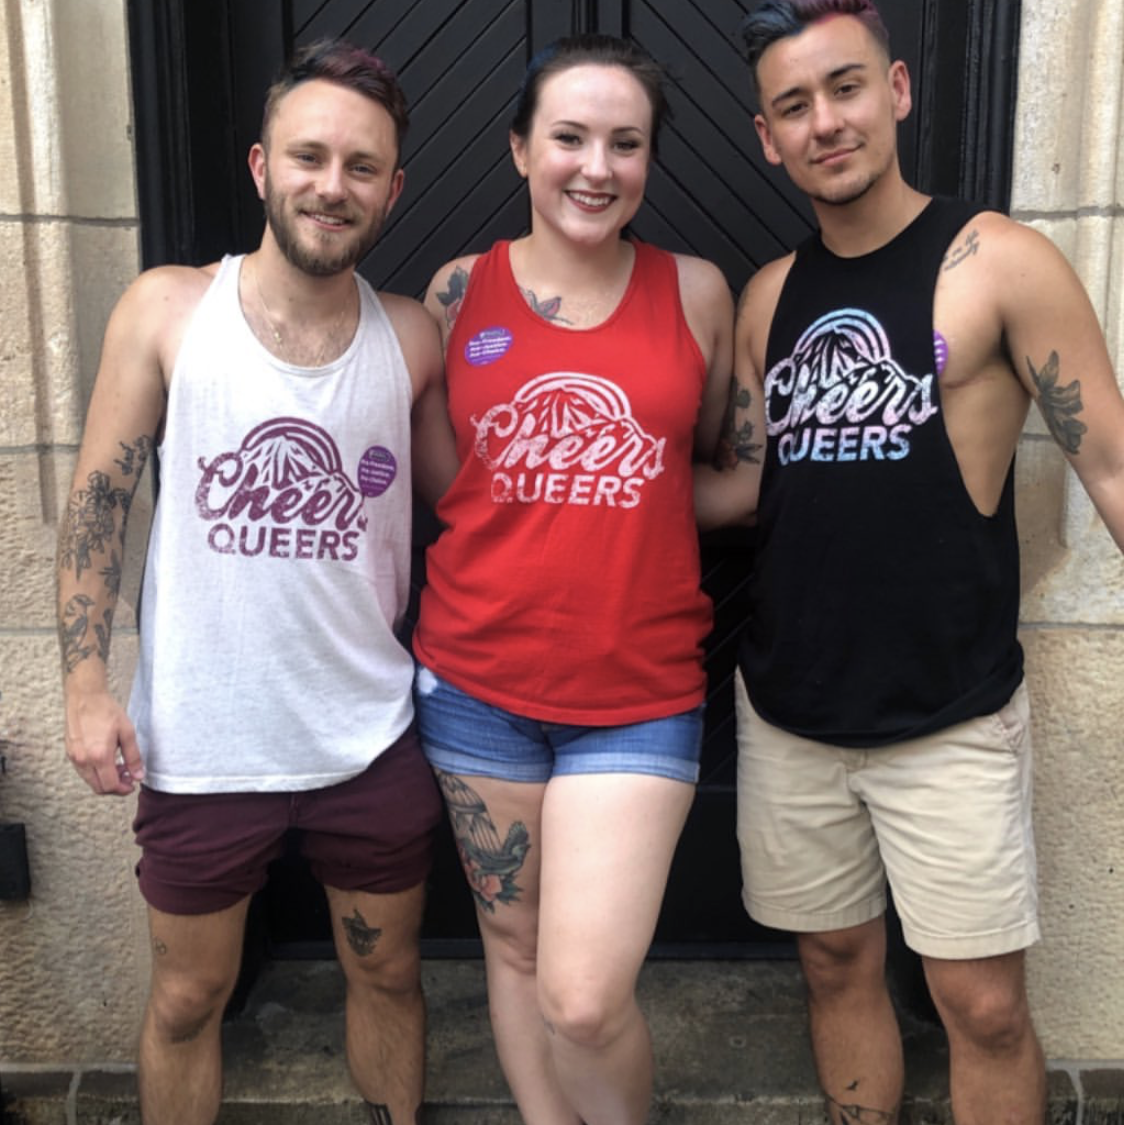 Asher (he), Kristen (she) & Kaleb (he) - Flavnting our Cheers Queers Tanks in 3 different color combos!